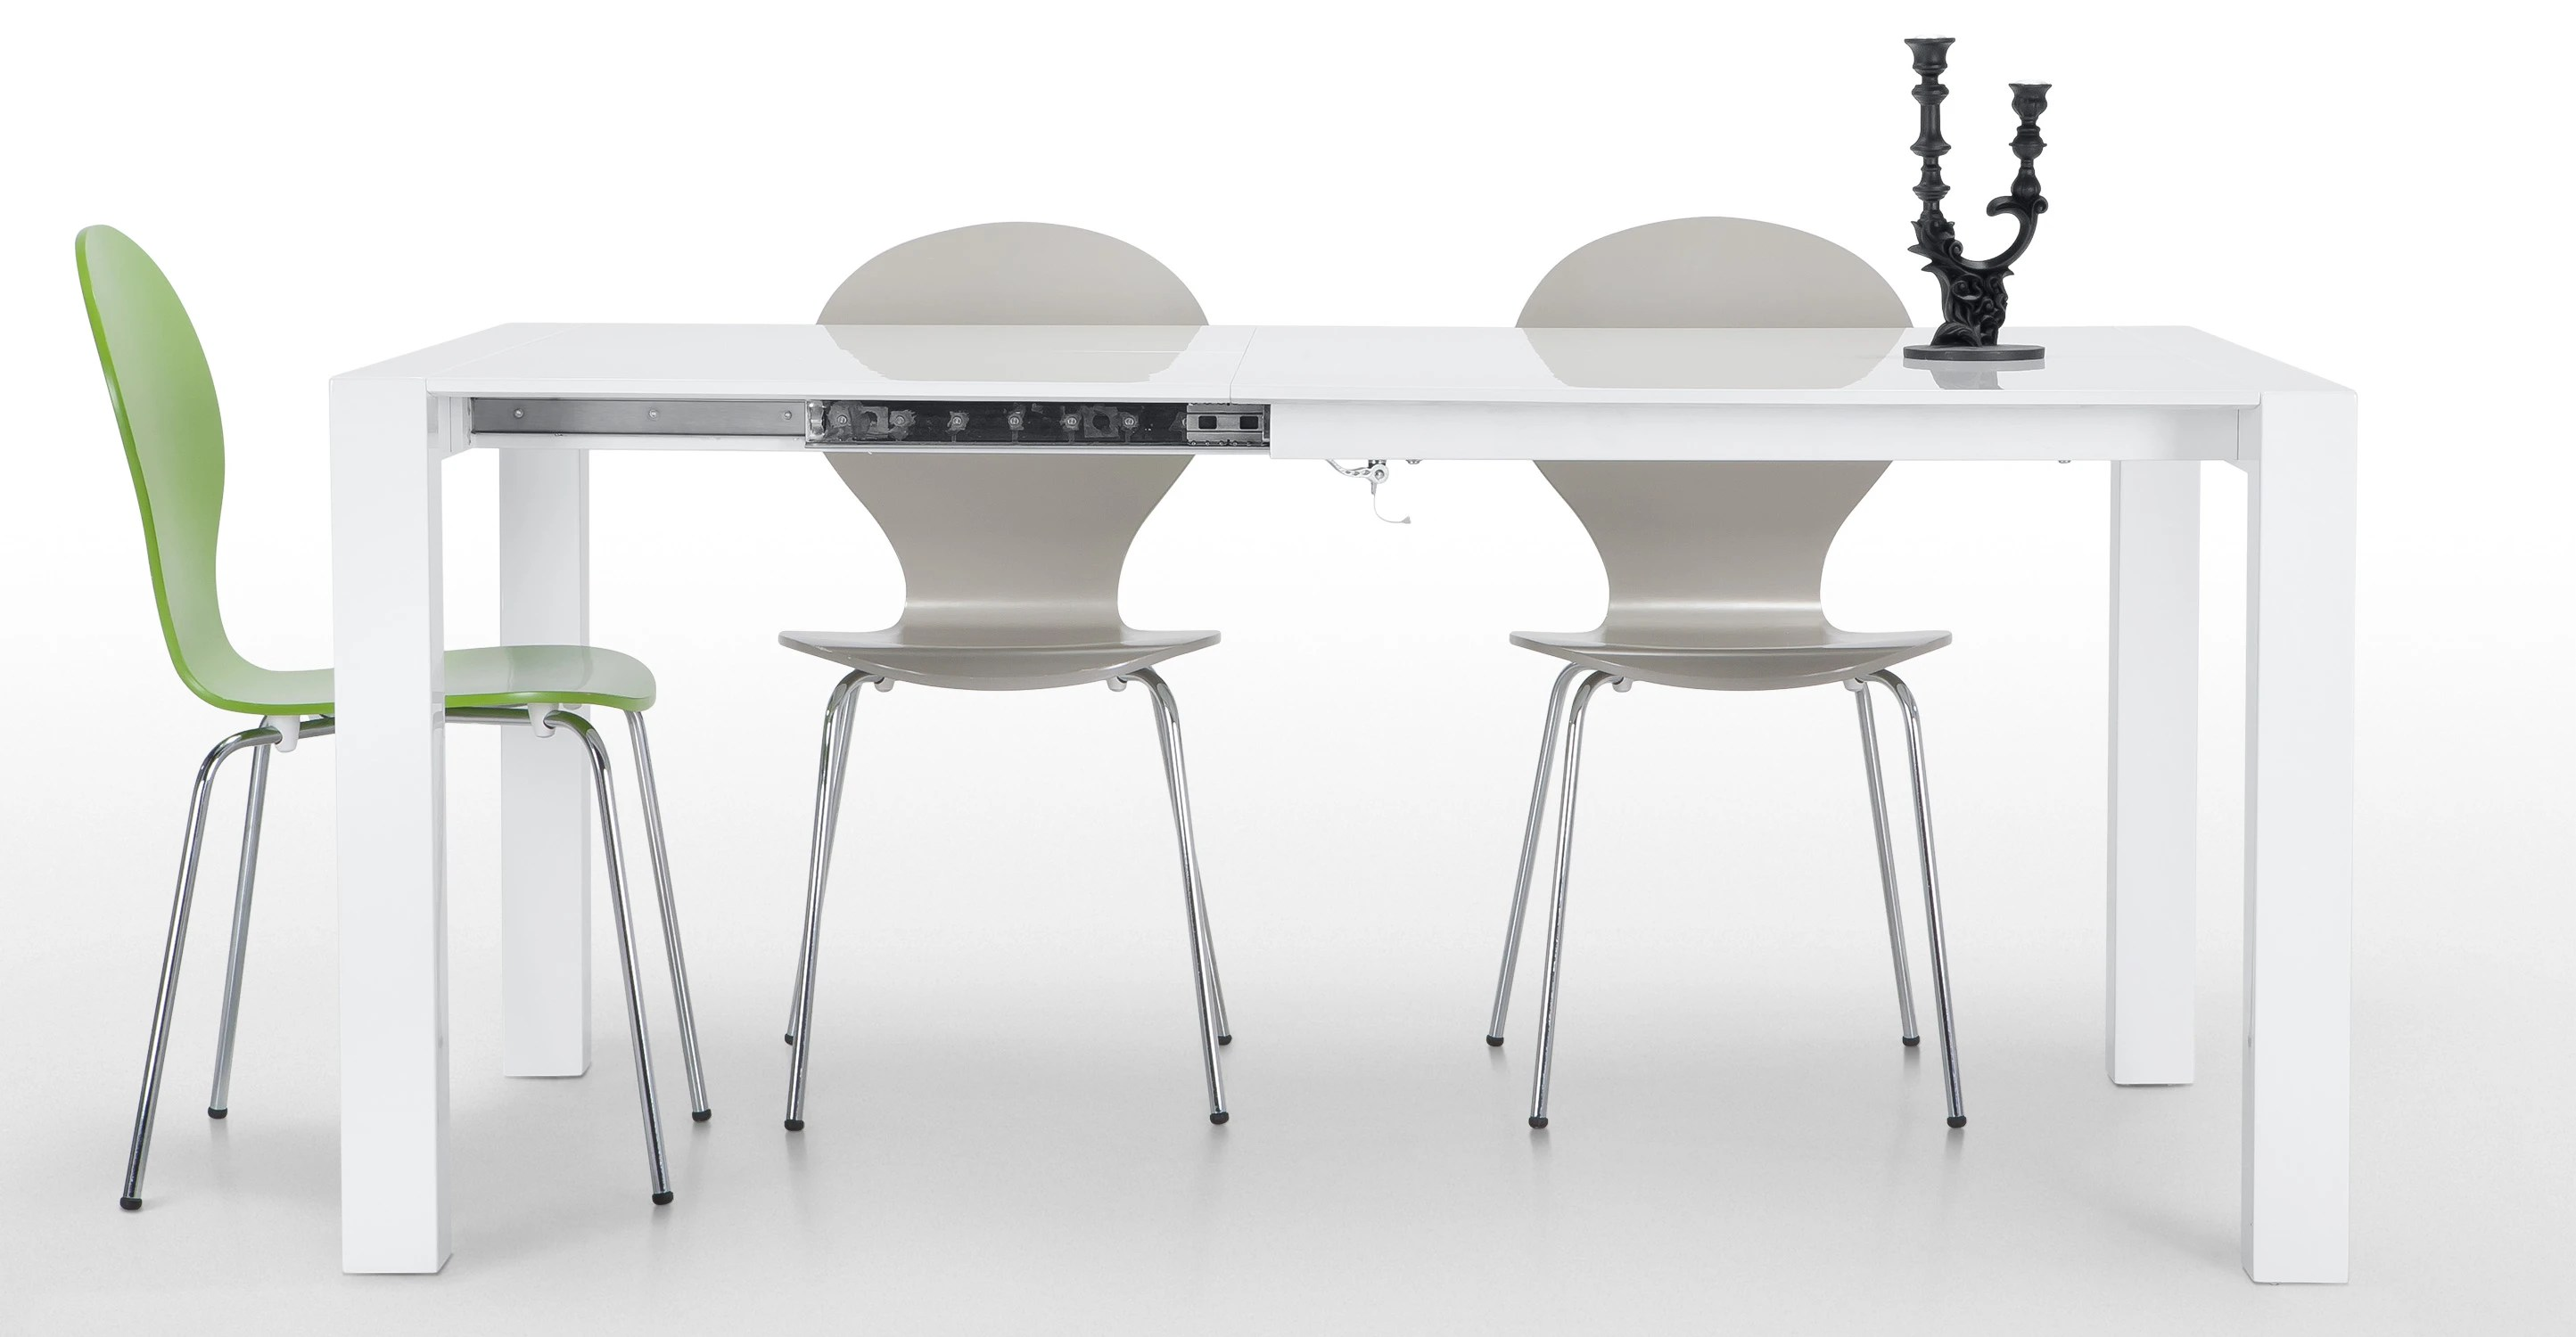 Esstisch Ausziehbar Design Bramante Extendable Square Dining Table In White | Made.com